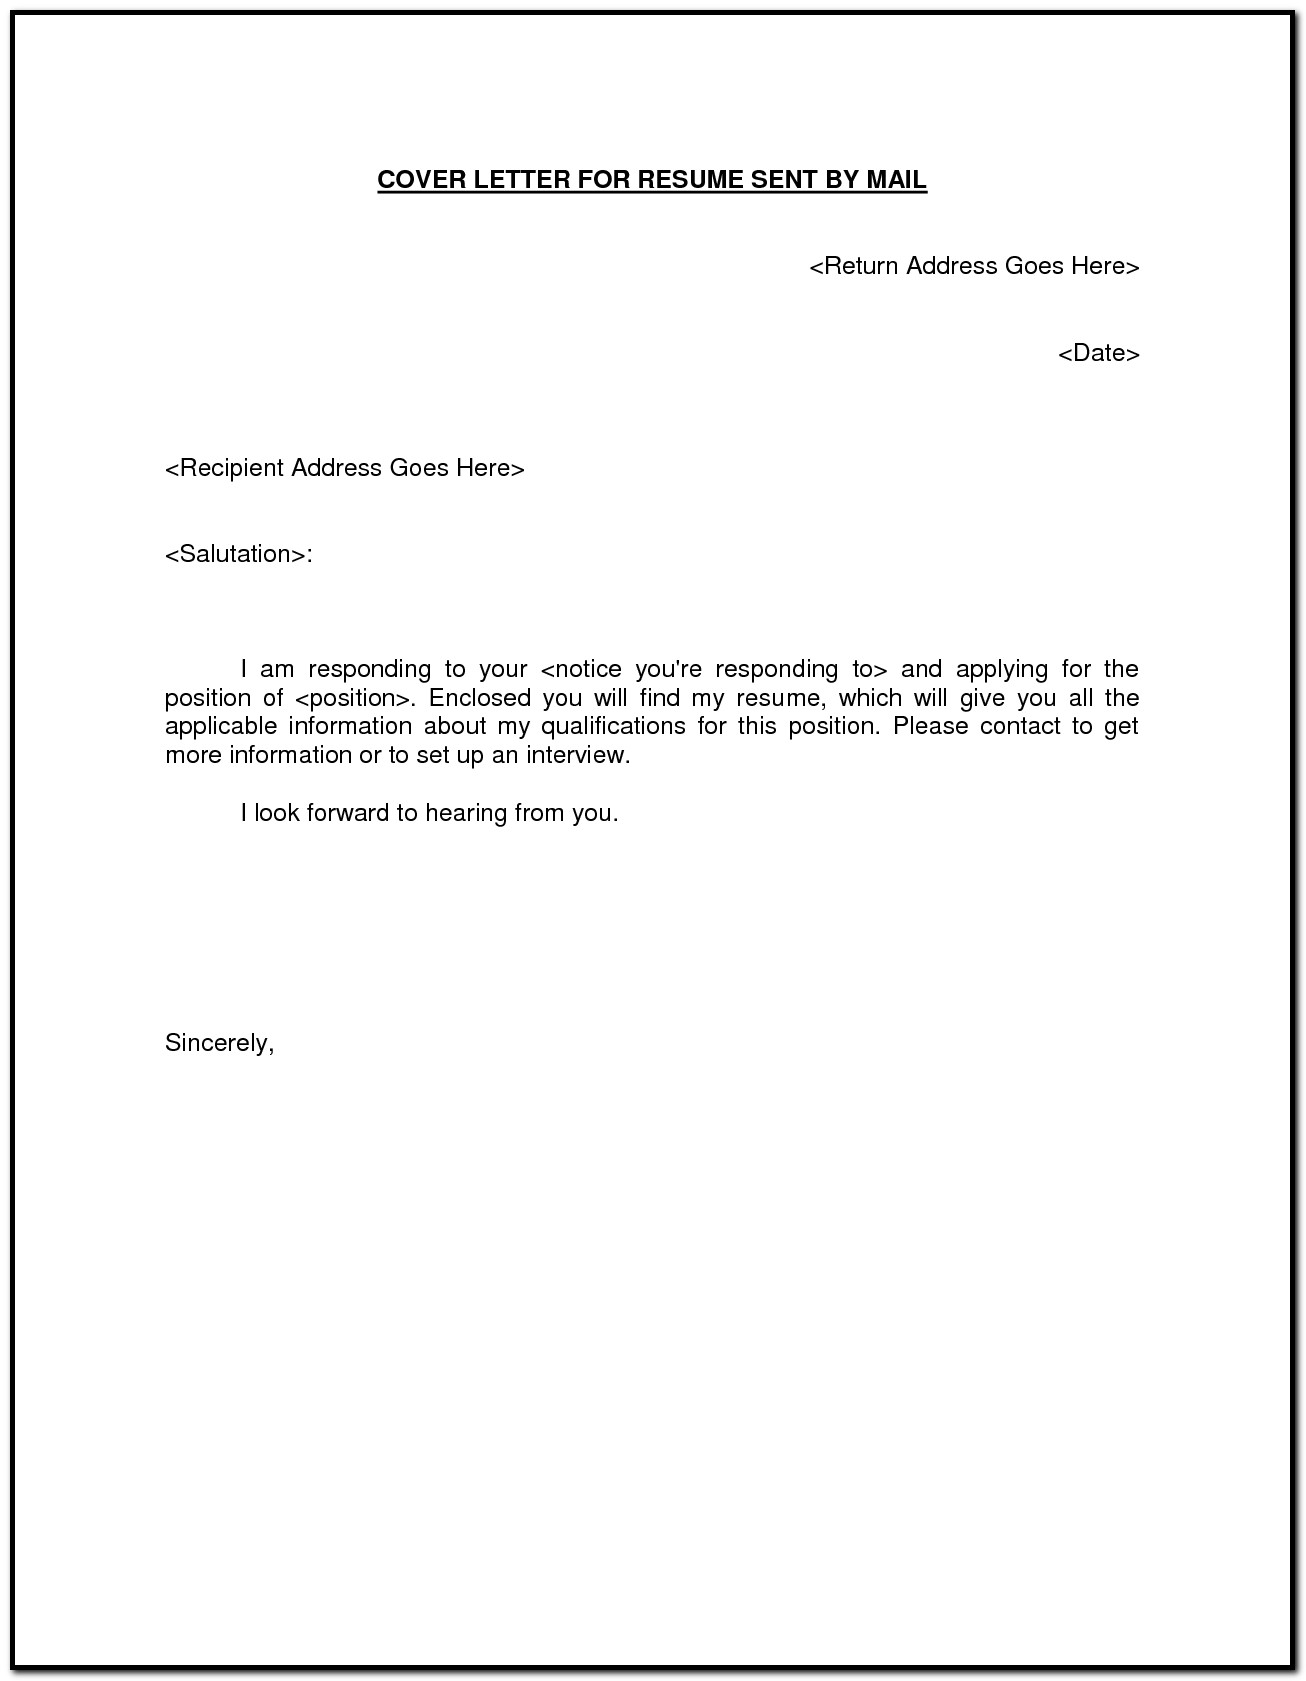 Sample Of Cover Letter For Sending Resume